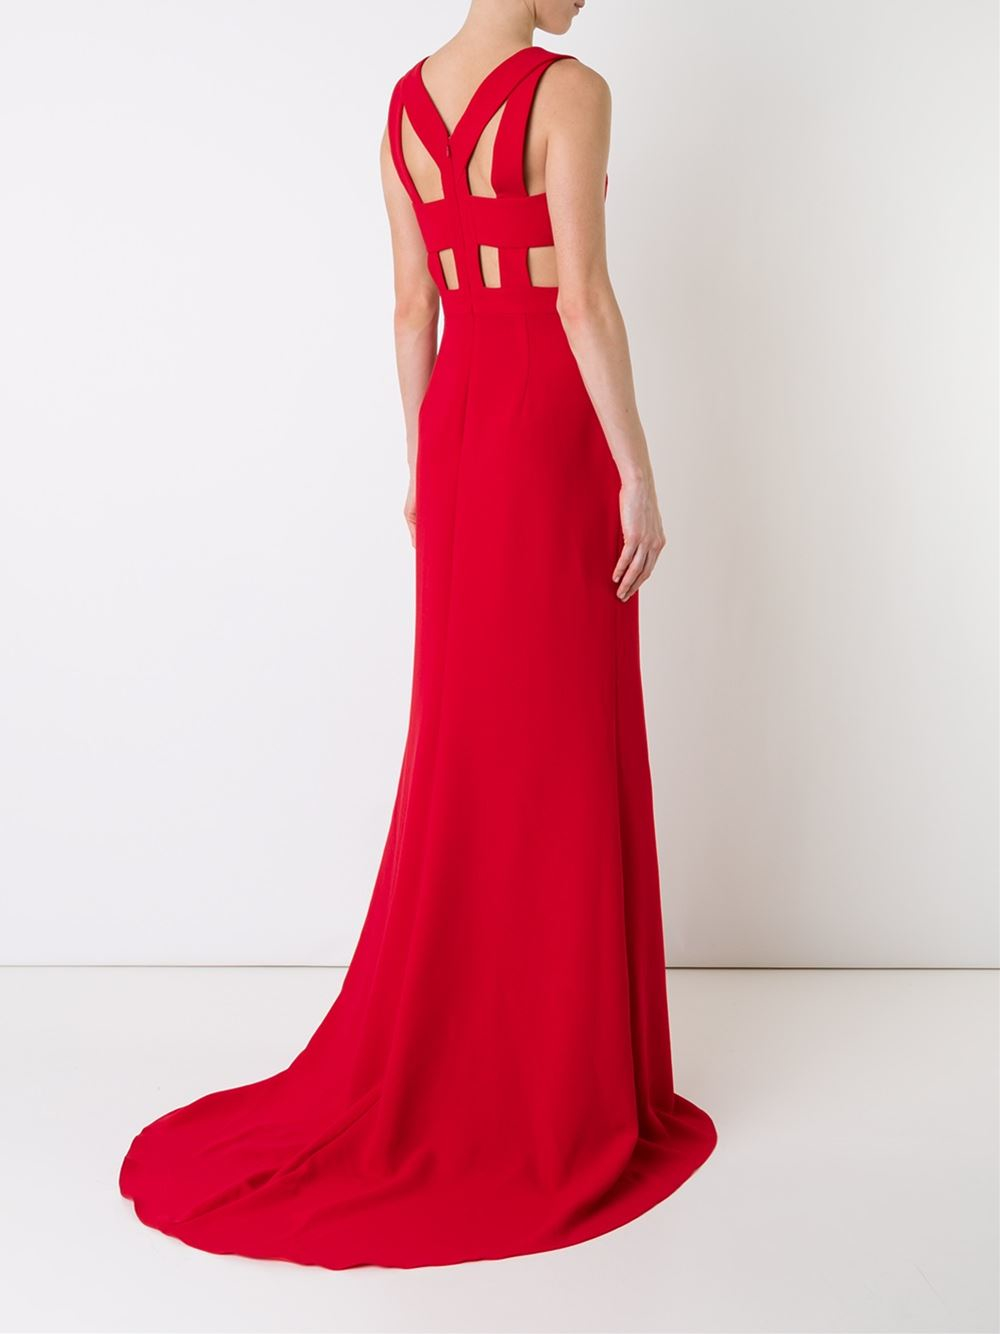 Discount Wholesale Price Genuine Cheap Online DRESSES - Long dresses Prabal Gurung Outlet 100% Guaranteed MgoXKJOht